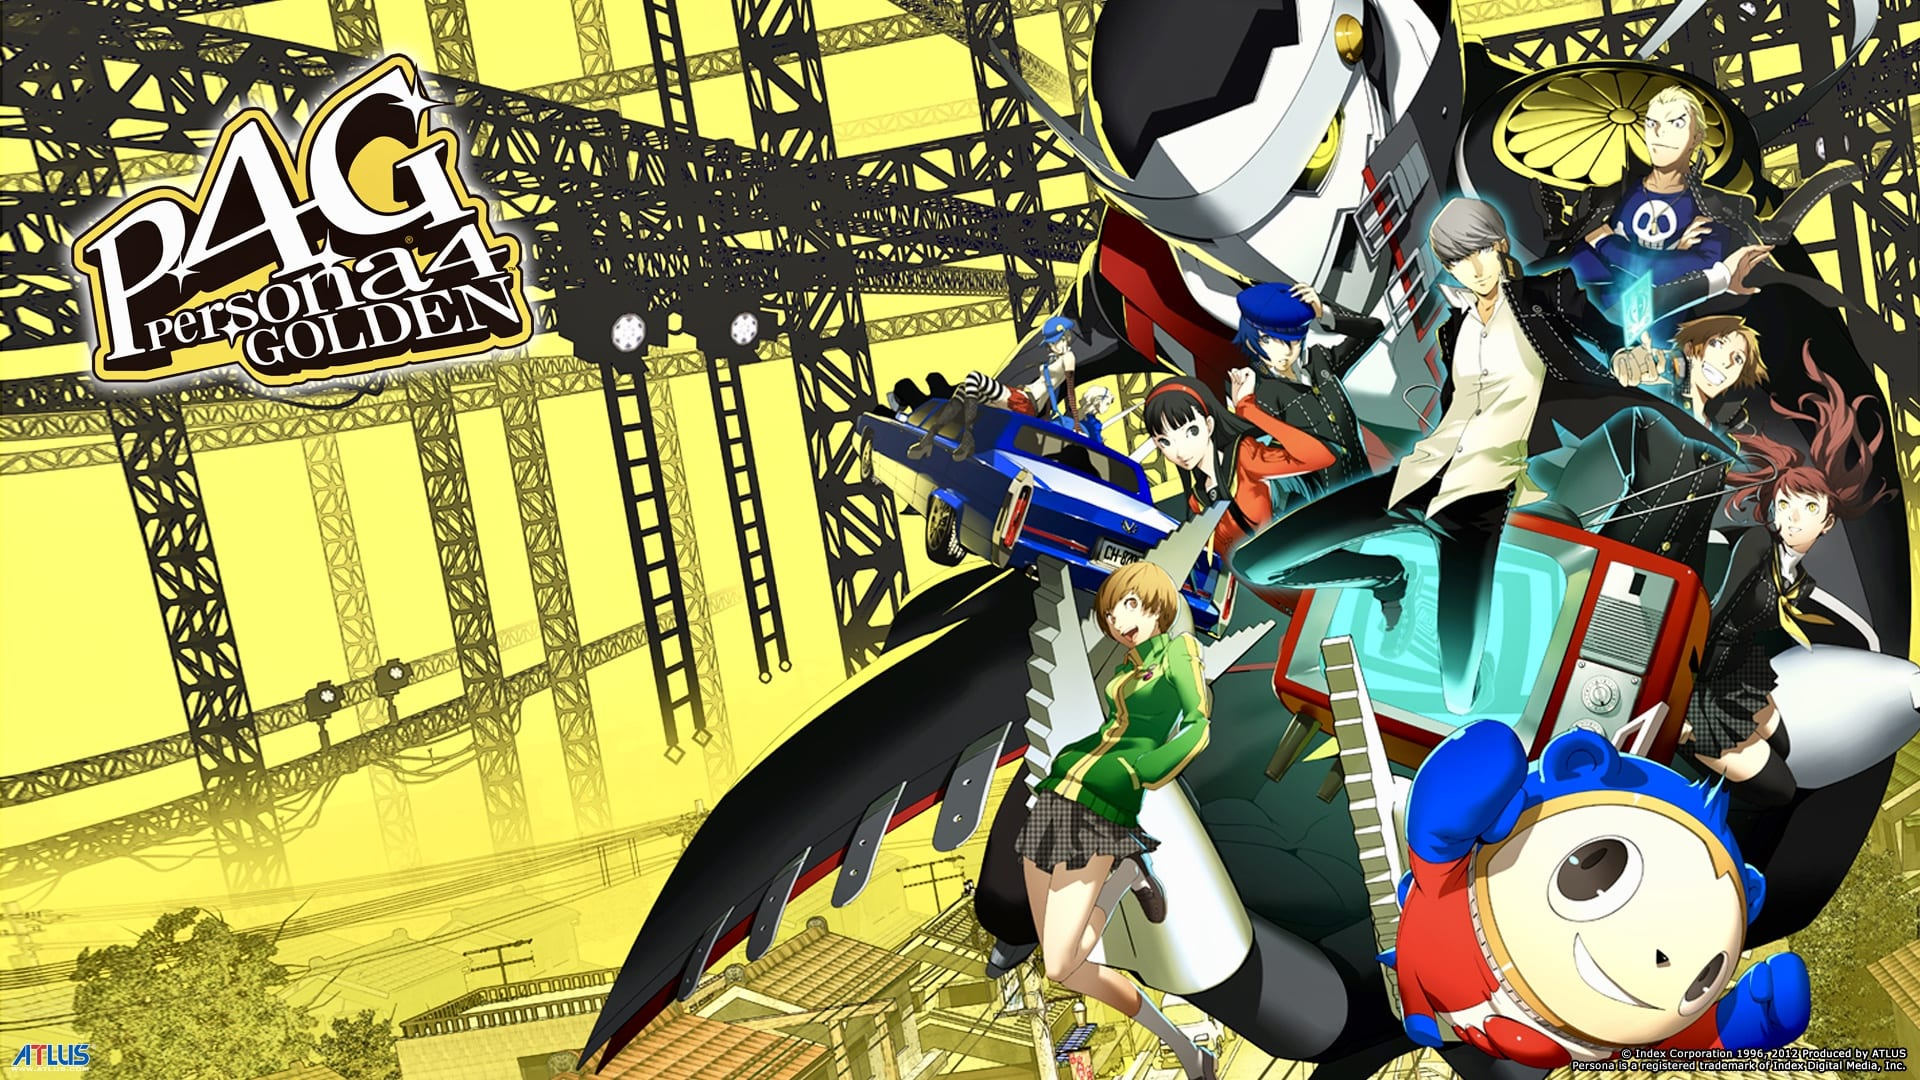 persona 4 golden how to beat reaper, death